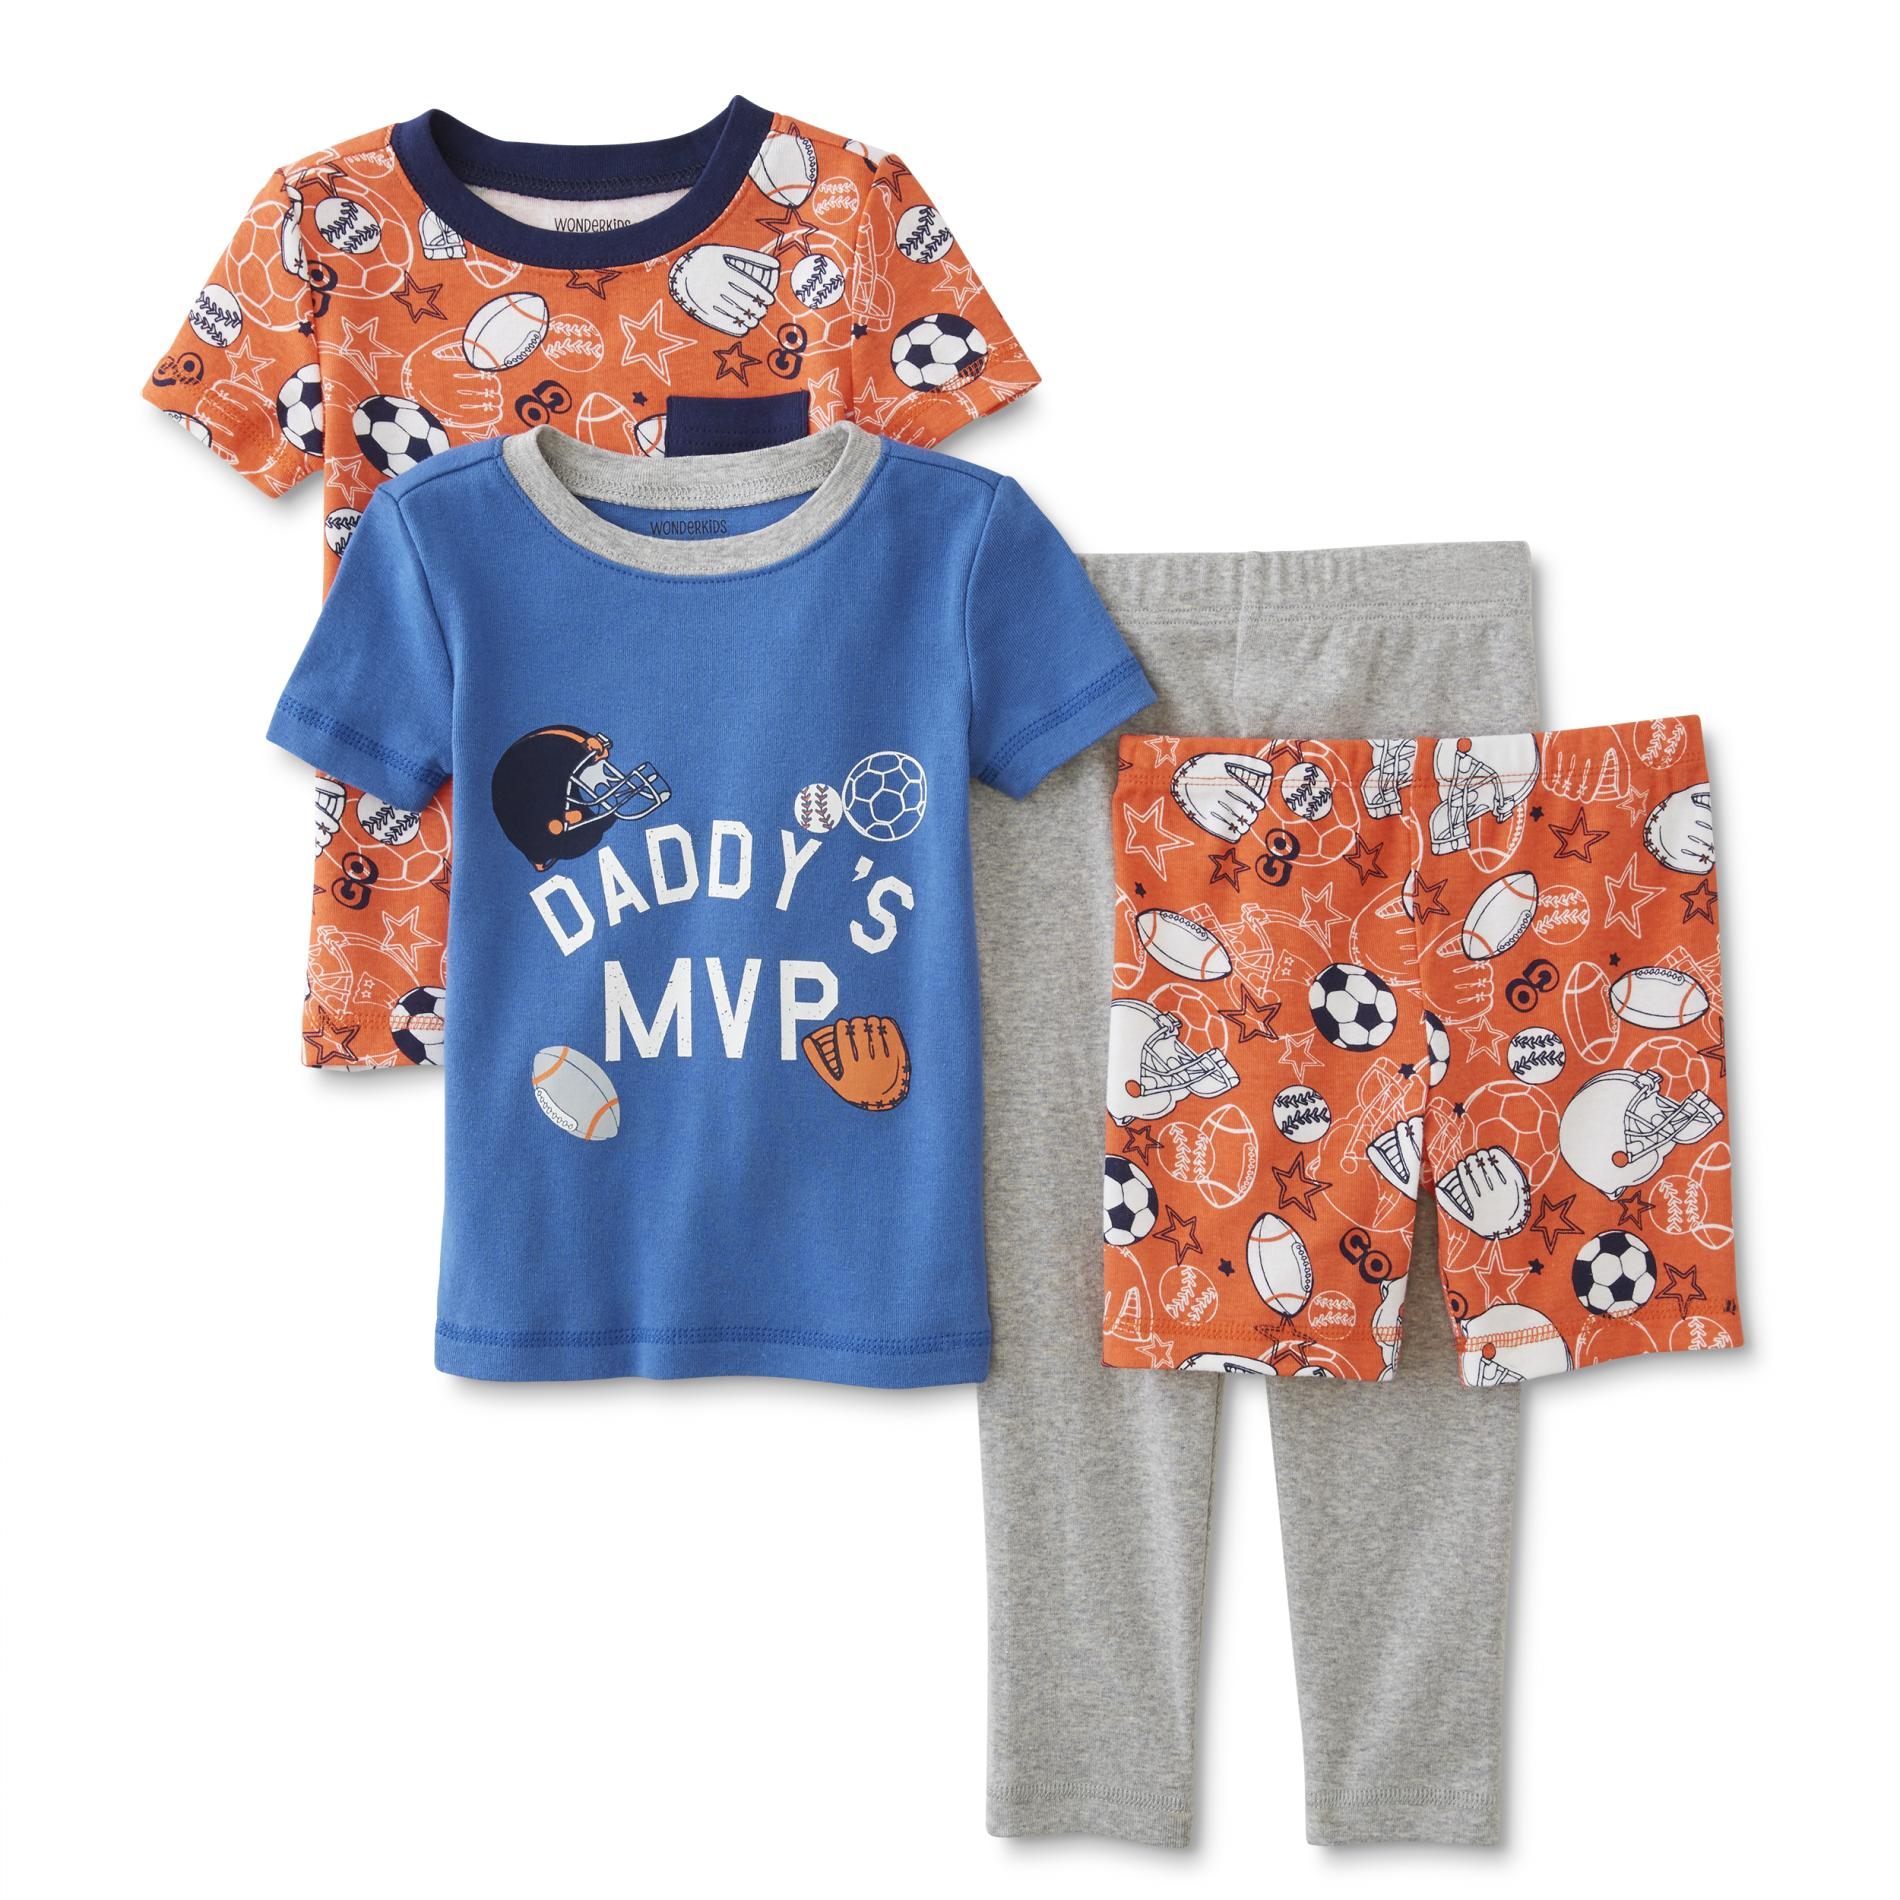 20+ Sports Pajamas Pictures and Ideas on STEM Education Caucus ed84b6cb8